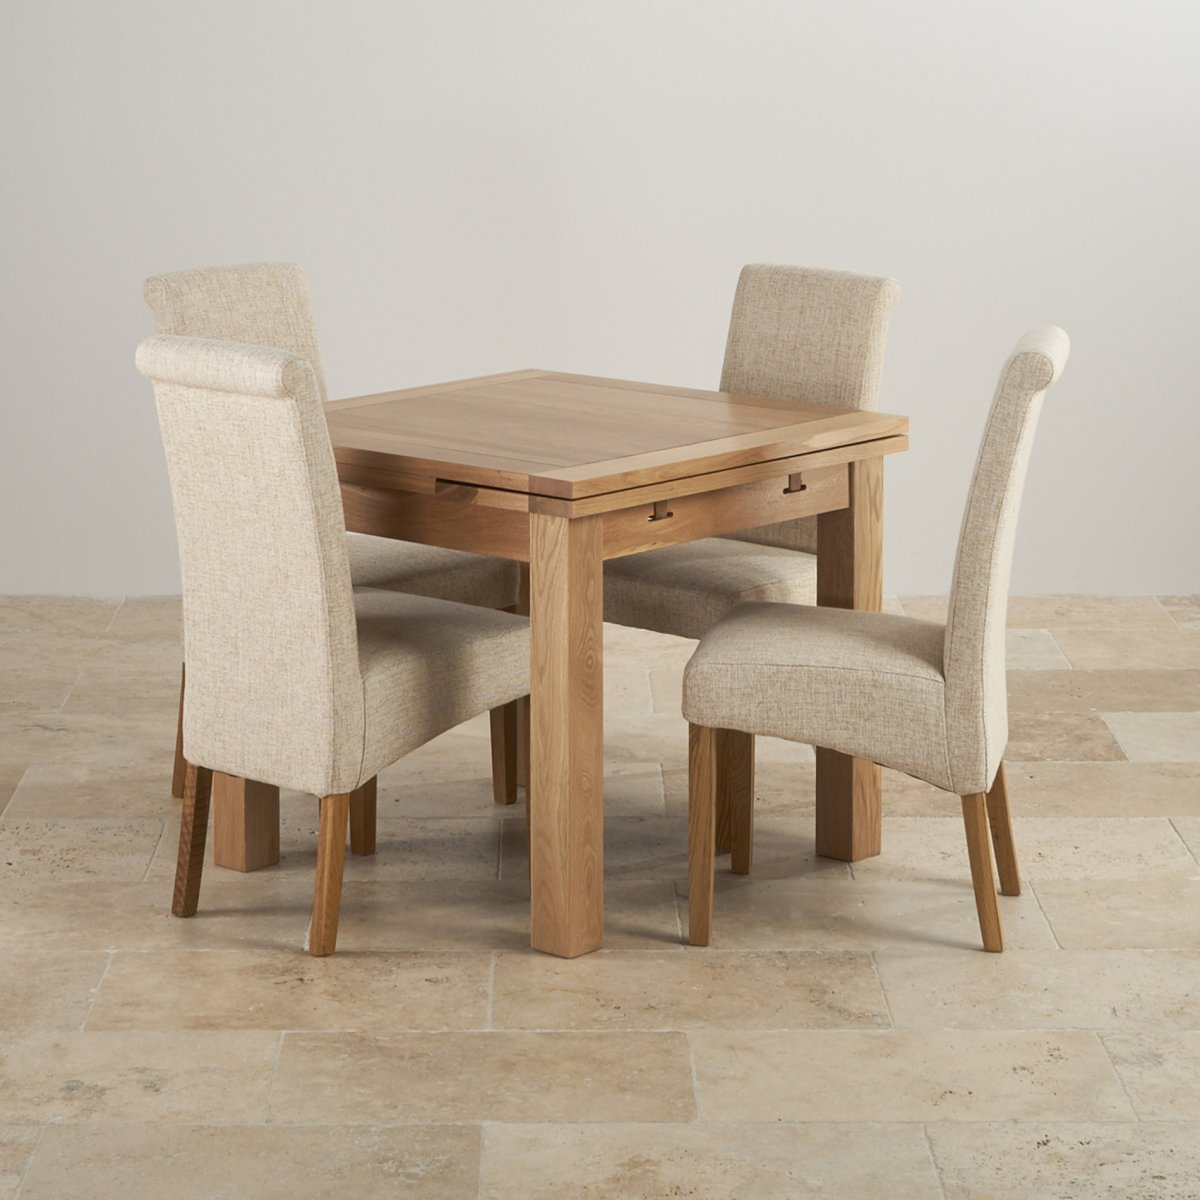 Solid Dining Table And Chairs: Dorset Oak 3ft Dining Table With 4 Beige Fabric Chairs